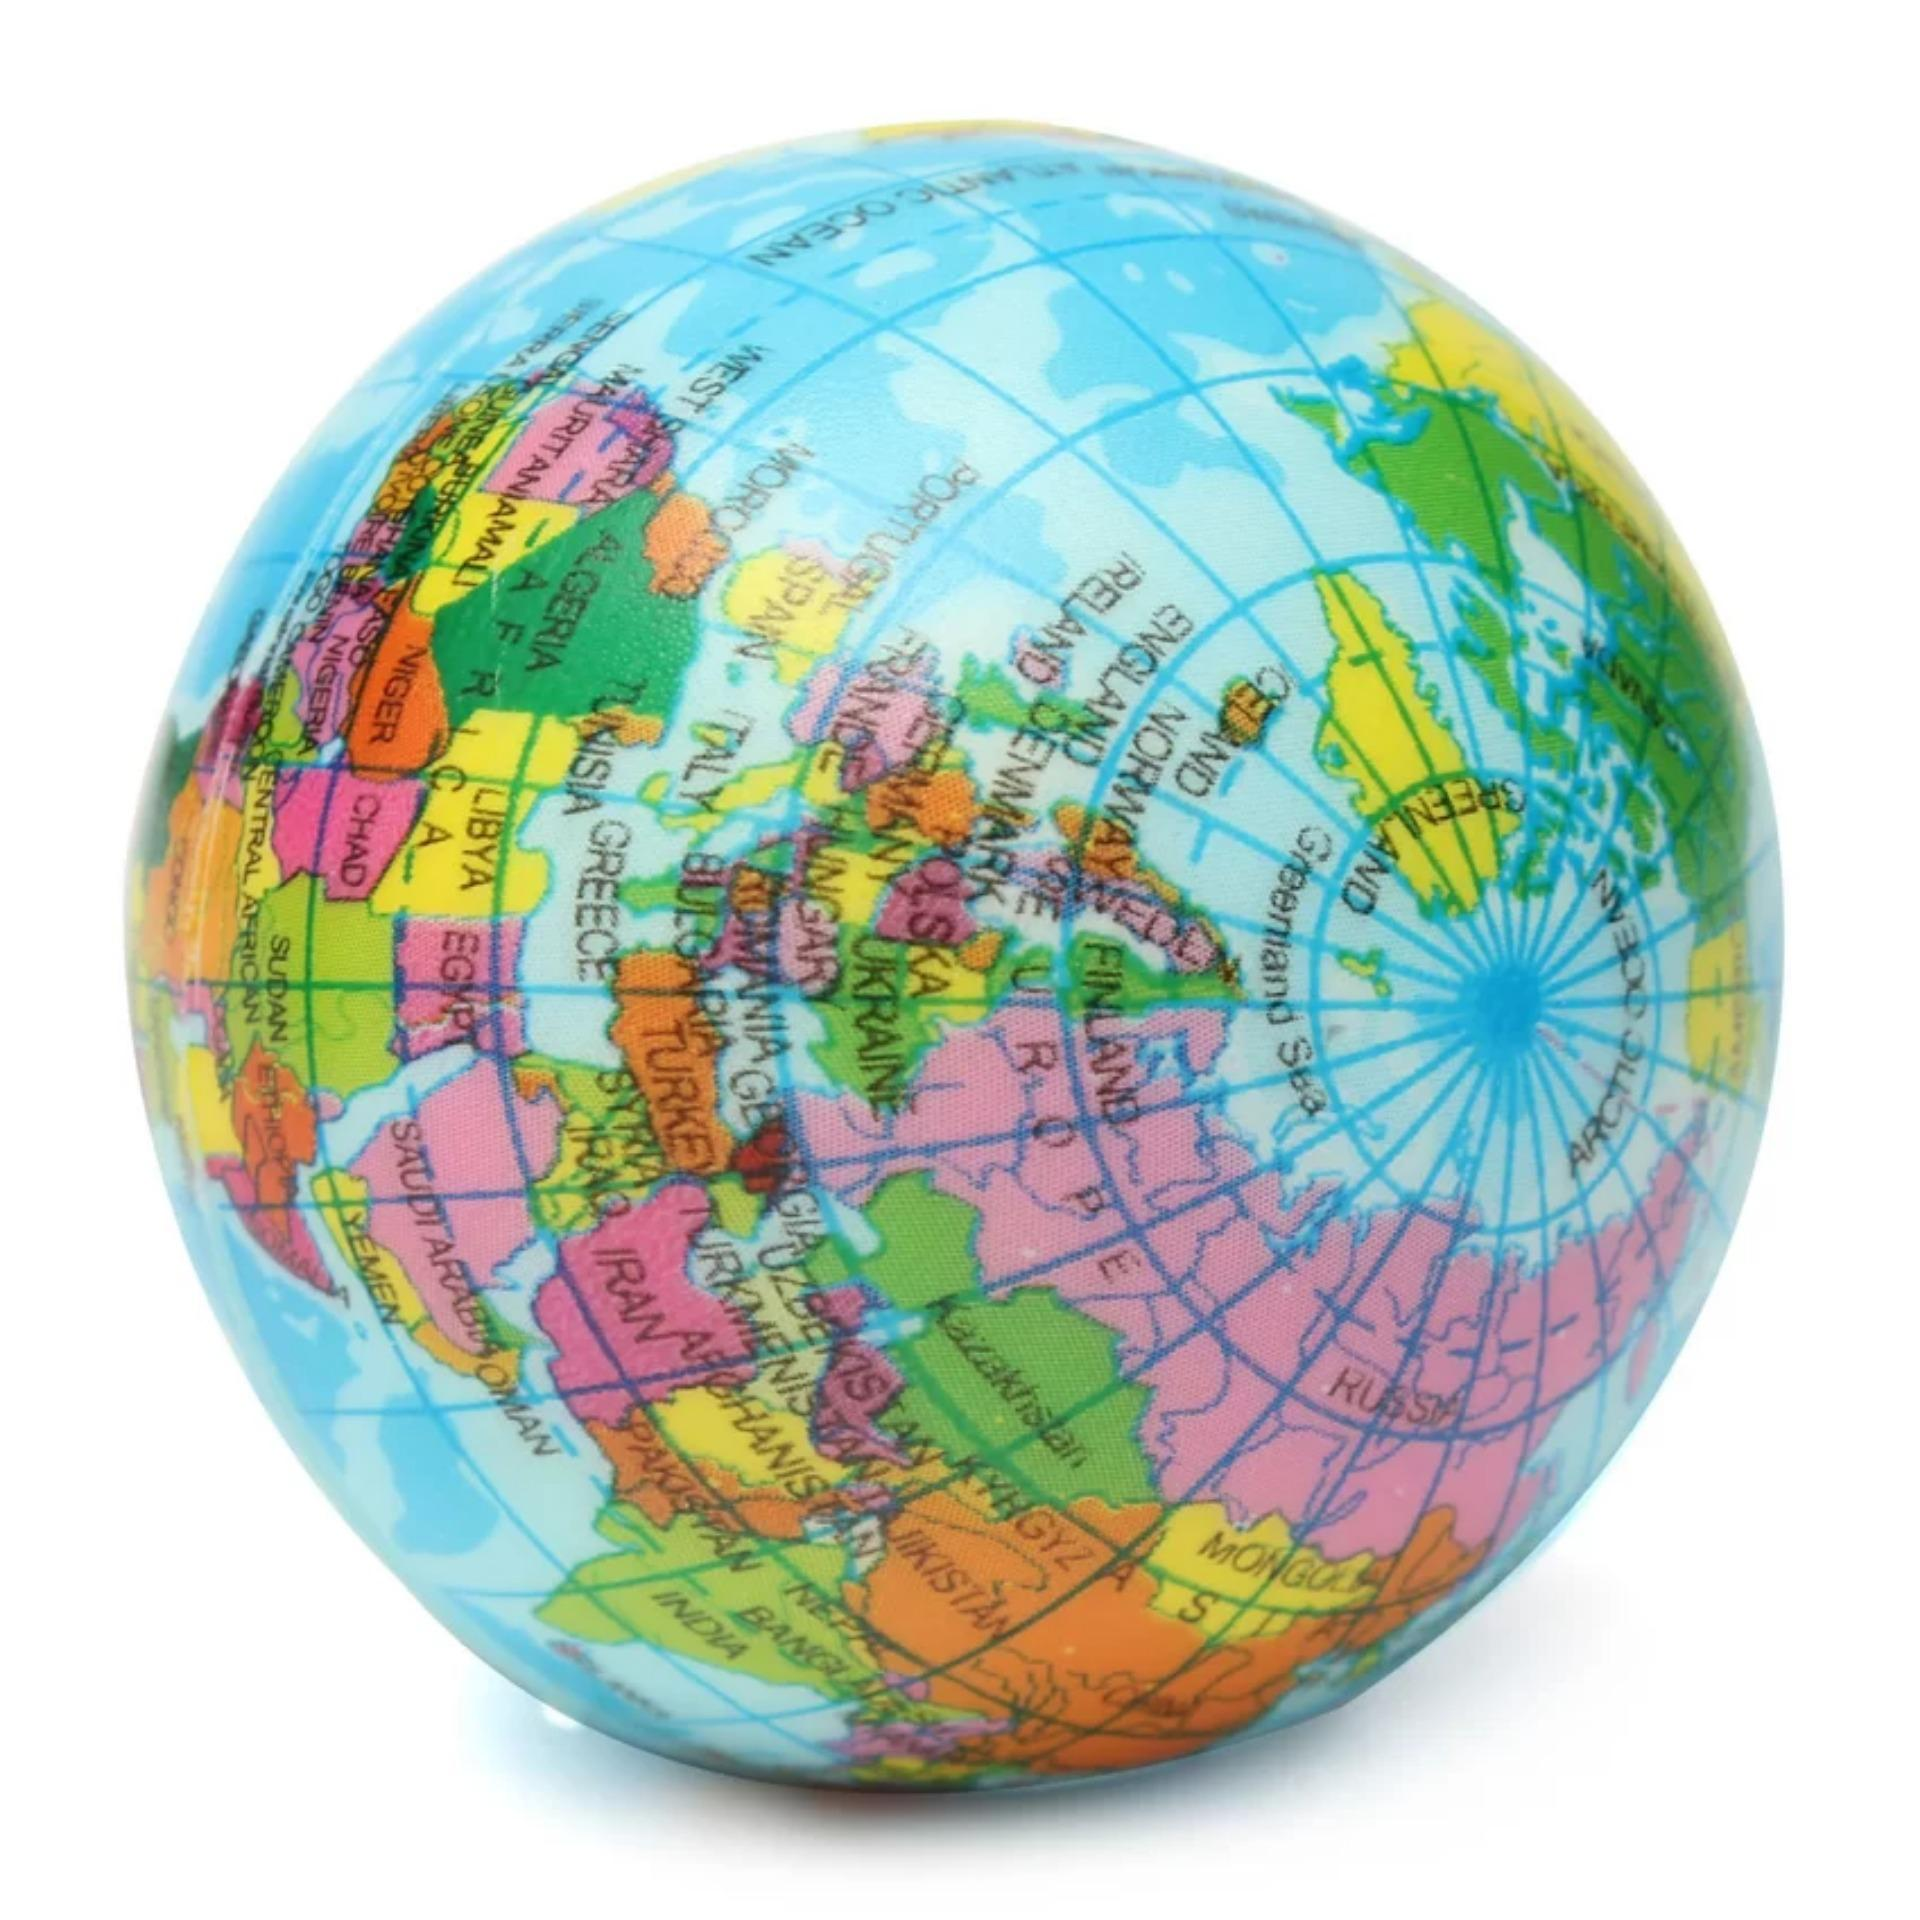 Philippines stress ball earth globe world map foam stress relief stress ball earth globe world map foam stress relief press ballgeography study tool toy gumiabroncs Choice Image